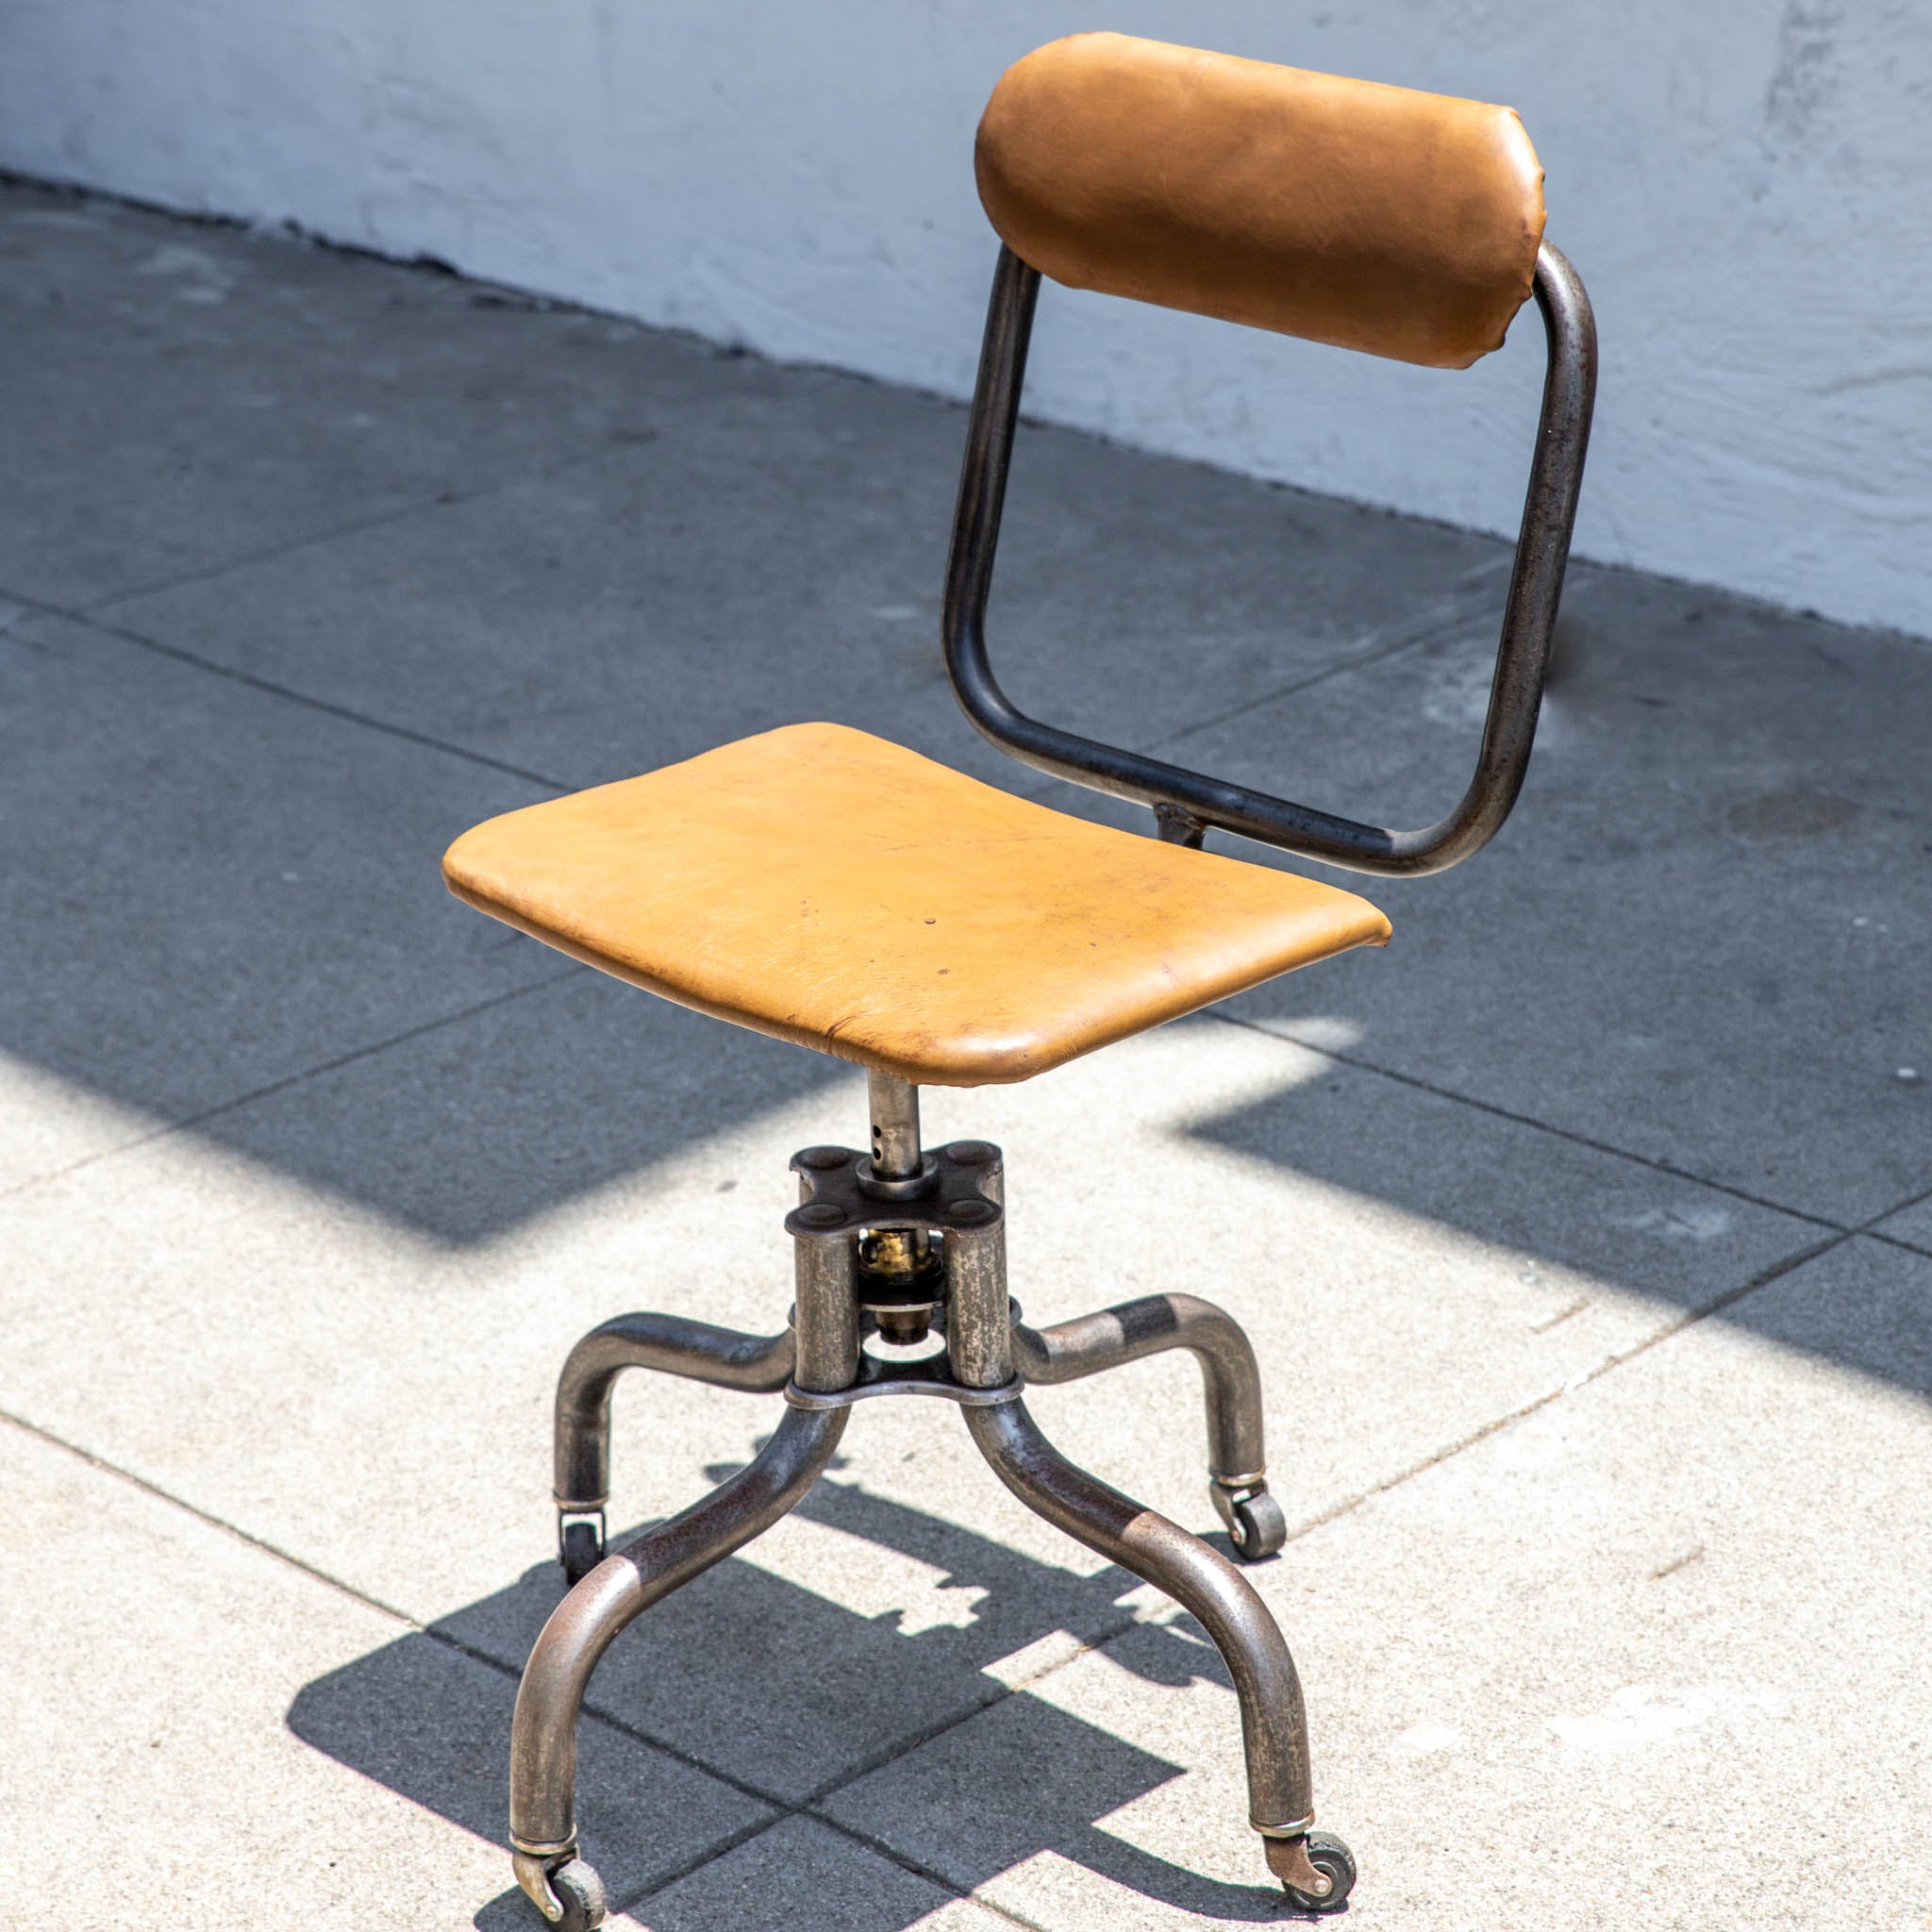 Fine Vintage Industrial Leather Swivel Desk Chair By Fritz Cross Pdpeps Interior Chair Design Pdpepsorg